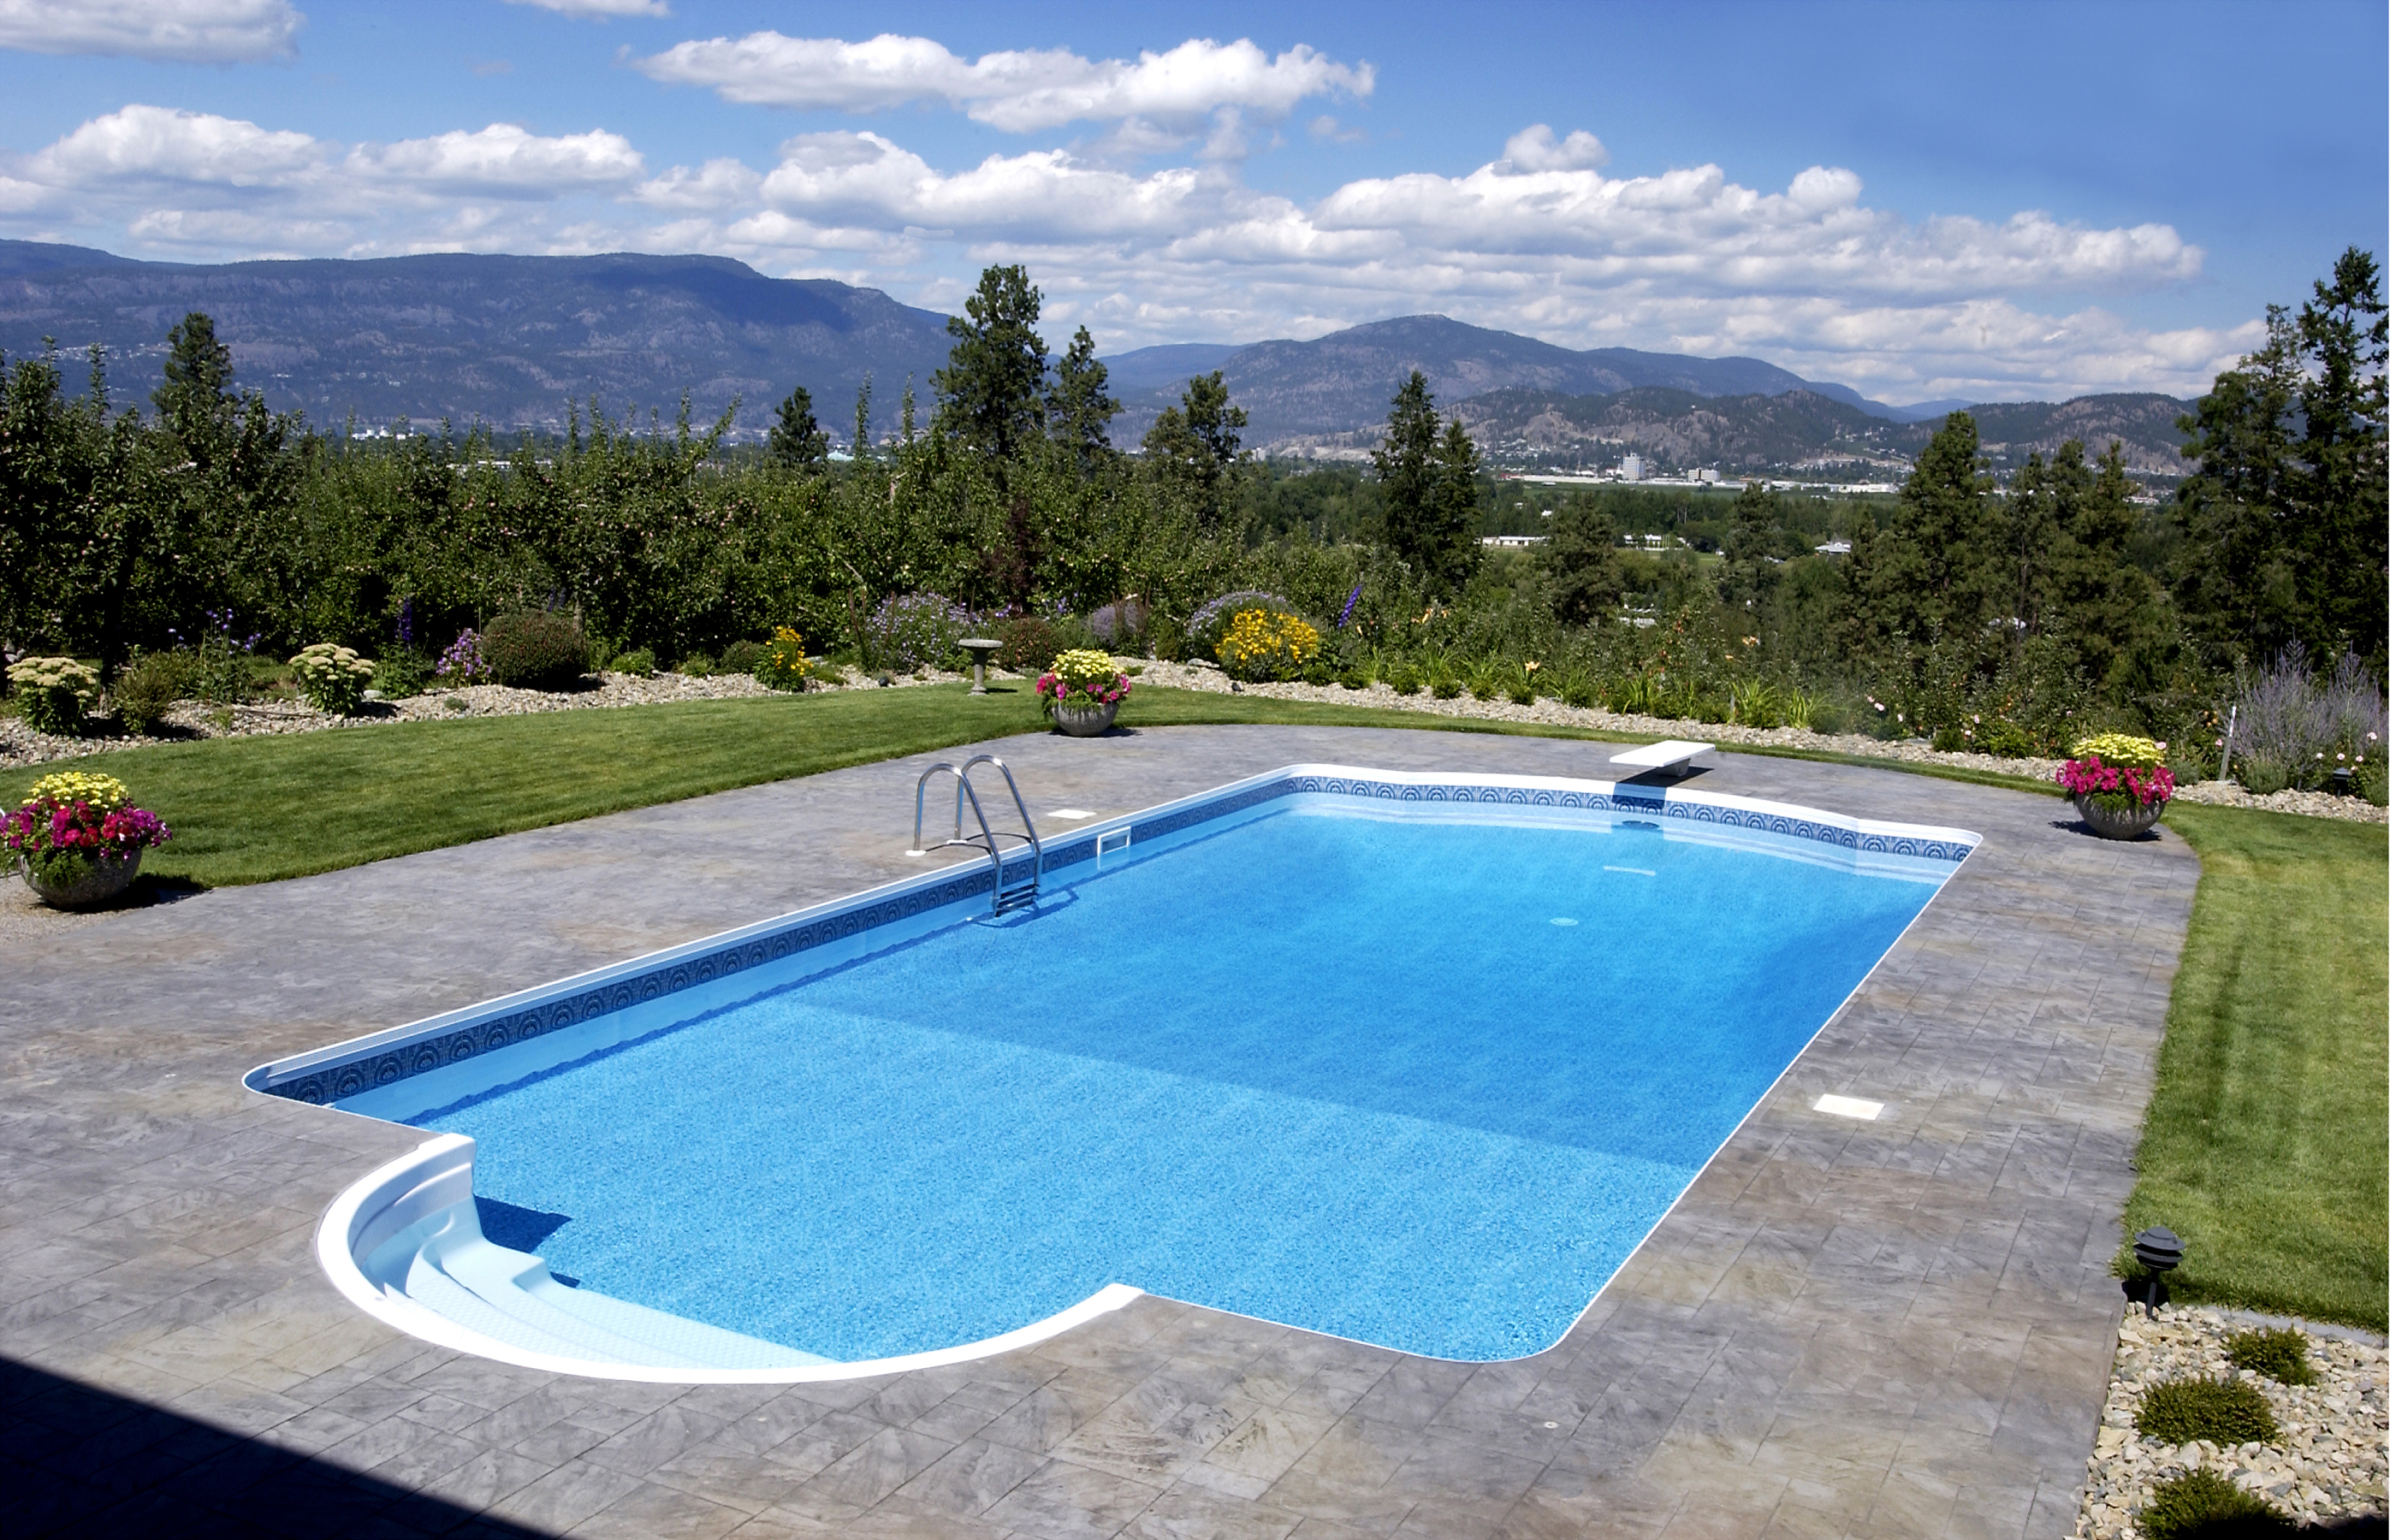 Swimming pool design for your beautiful yard homesfeed for Swimming pool layouts and designs